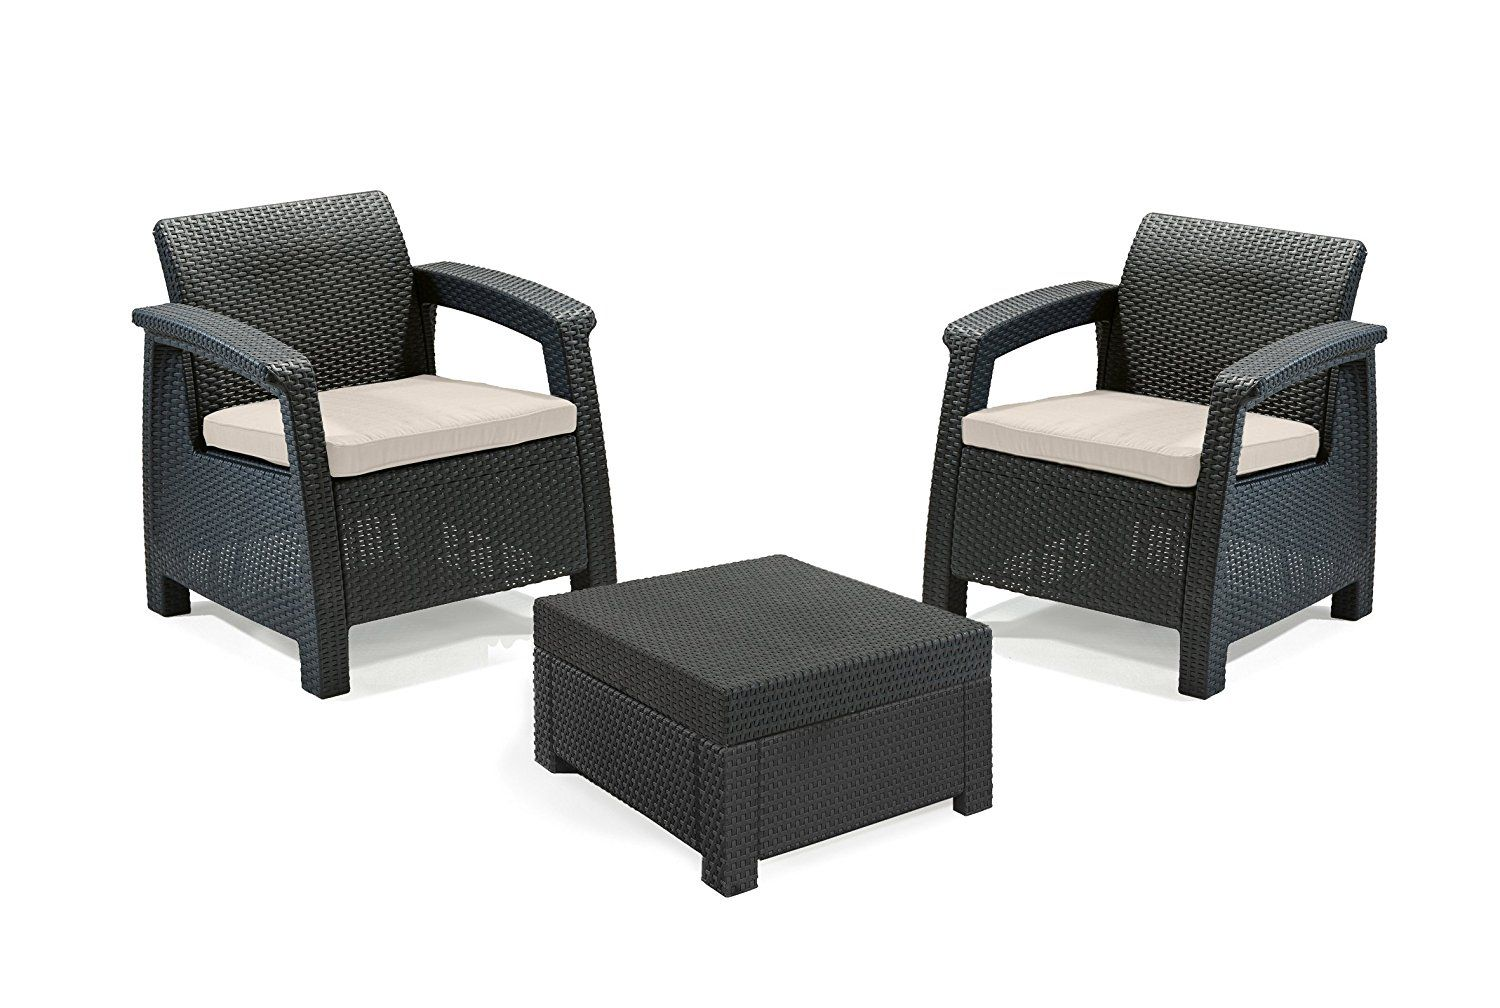 Keter Corfu Outdoor Rattan Balcony Garden Furniture Set 2 Seater - Graphite with Mushroom Cushions  sc 1 st  Pinterest & Keter Corfu Outdoor Rattan Balcony Garden Furniture Set 2 Seater ...